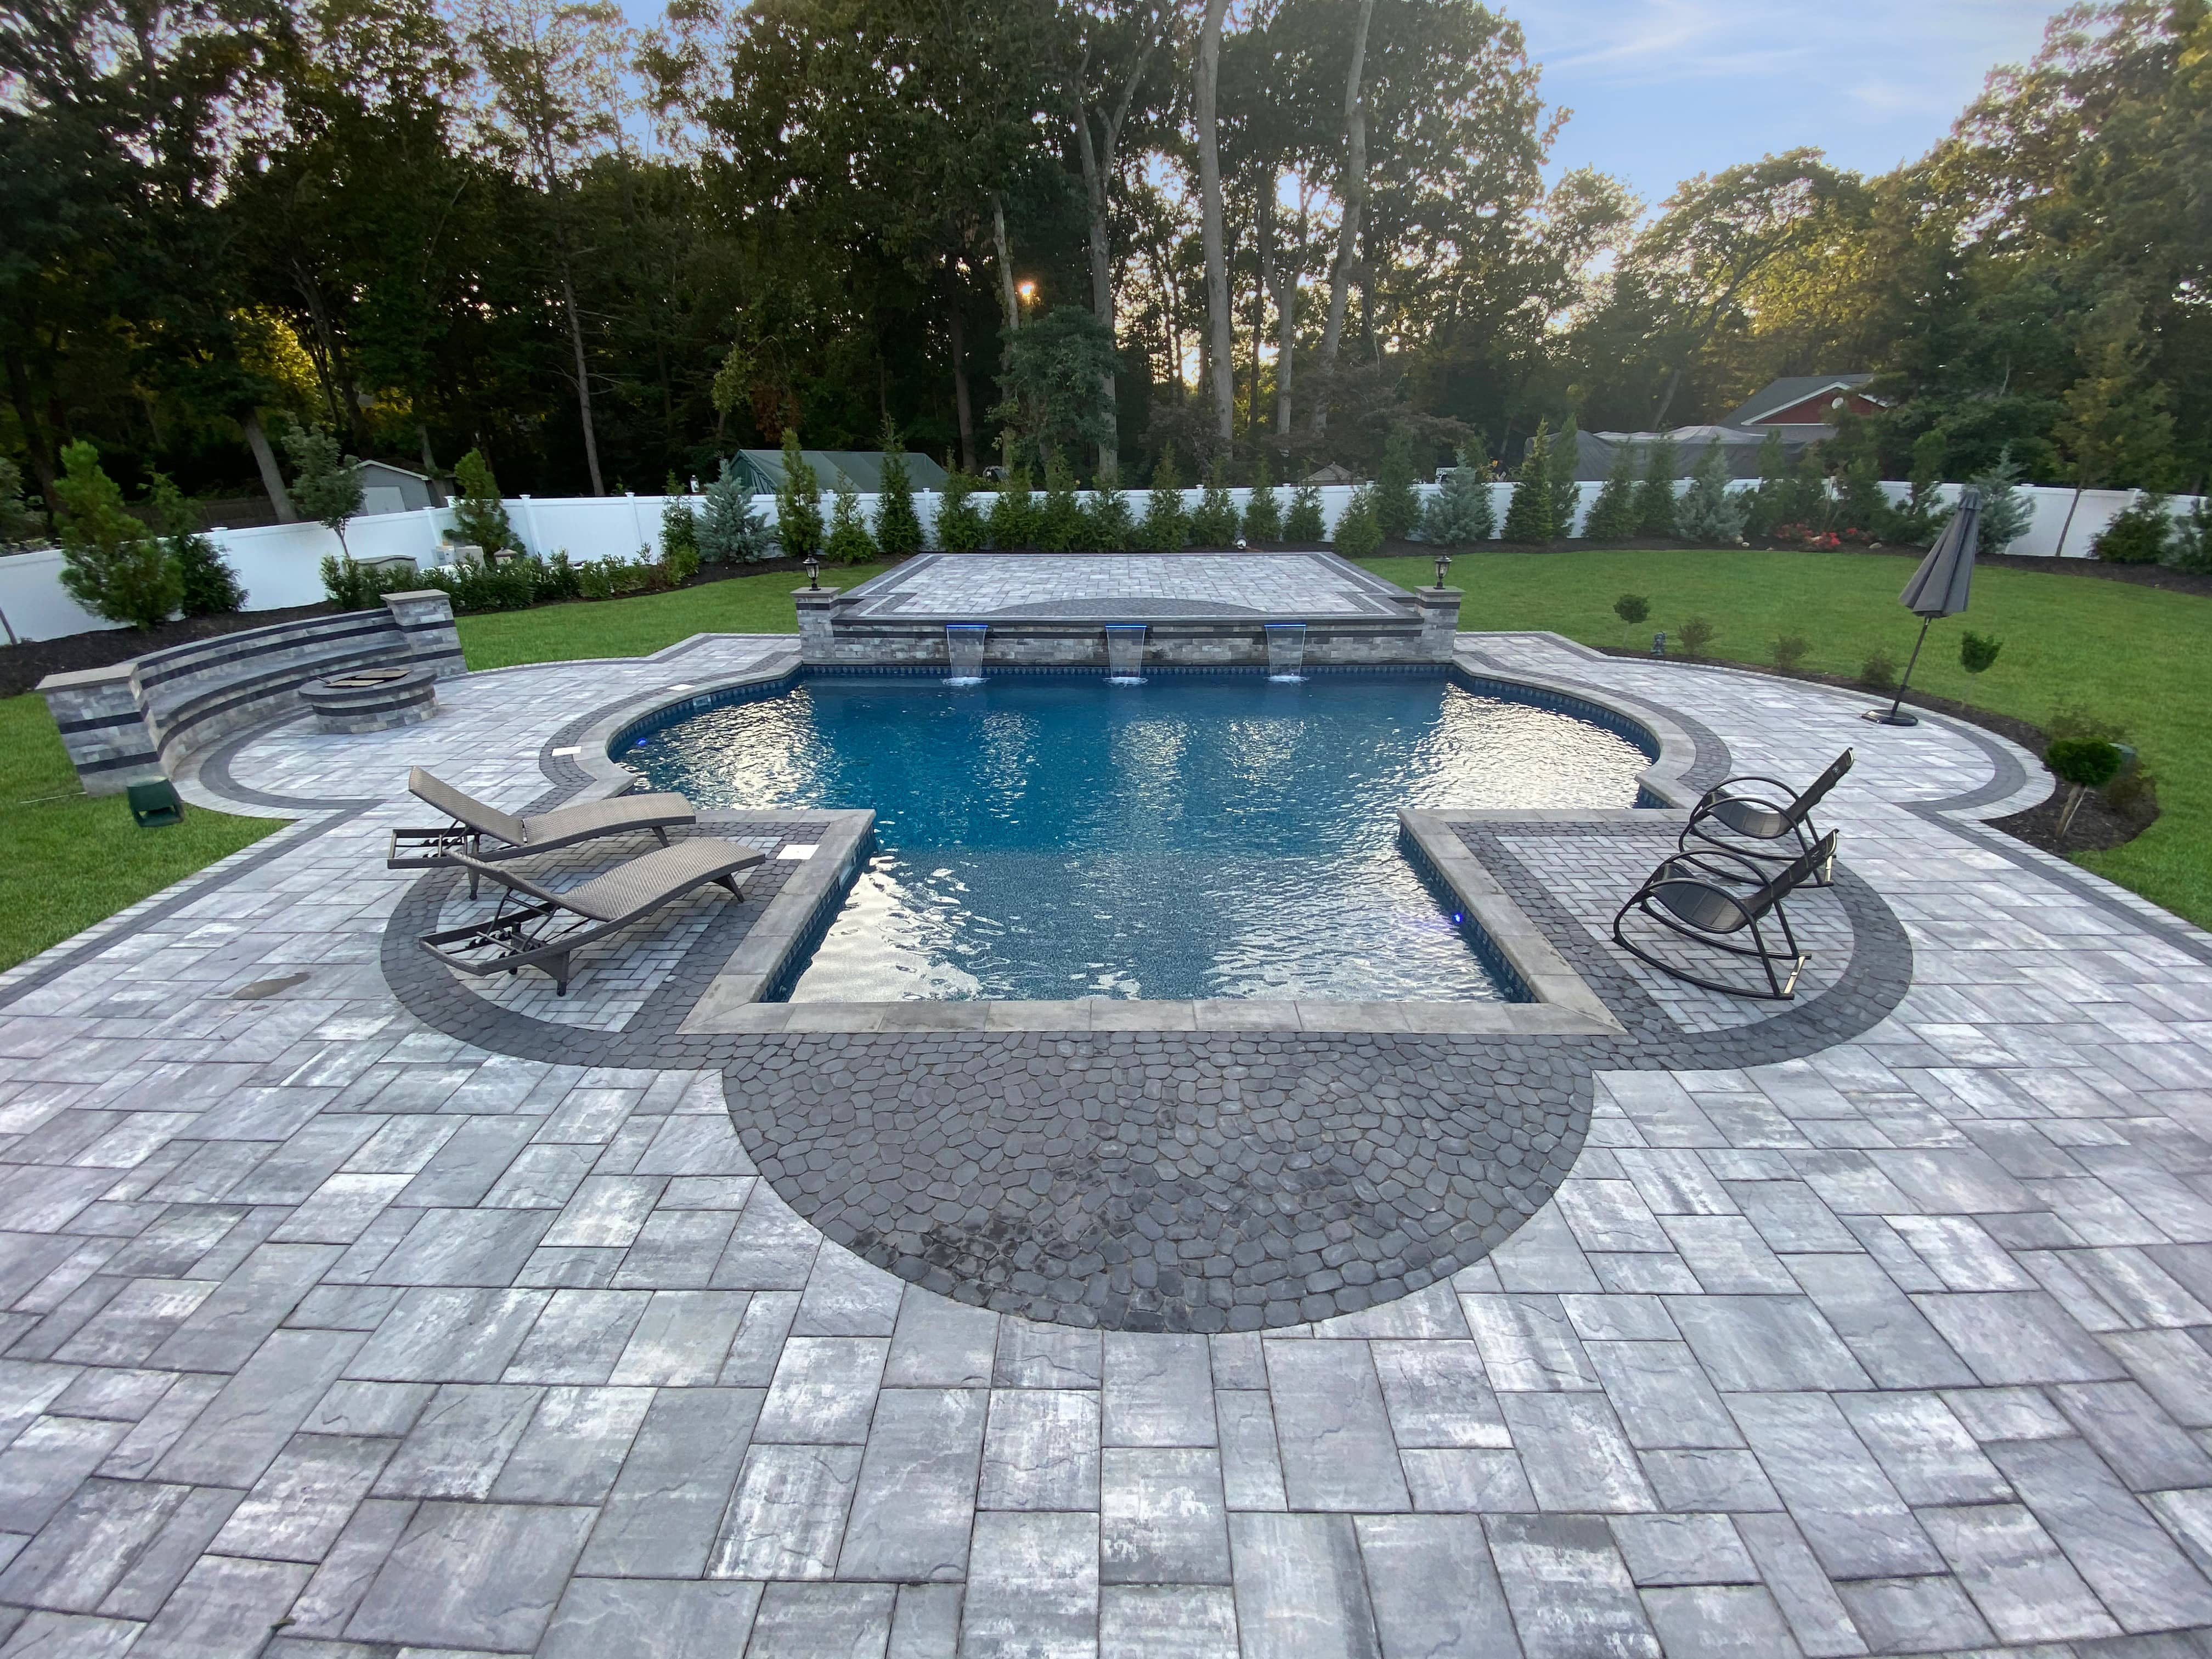 Custom Poolscape, brickwork pool surround, firepit, waterfall and lounge chairs, entertainment area